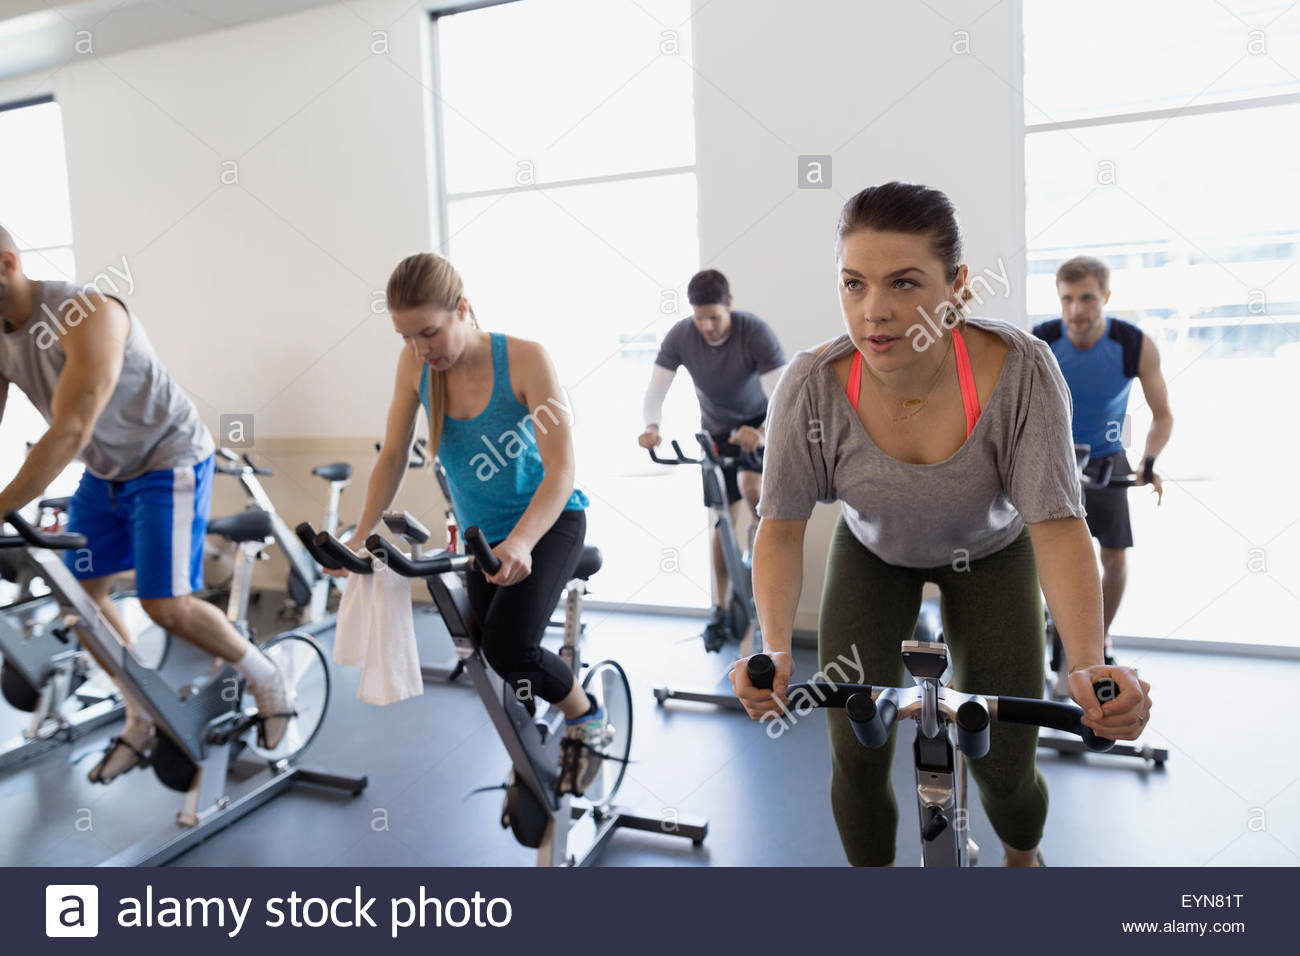 Spin class on stationary bikes at gym - Stock Image